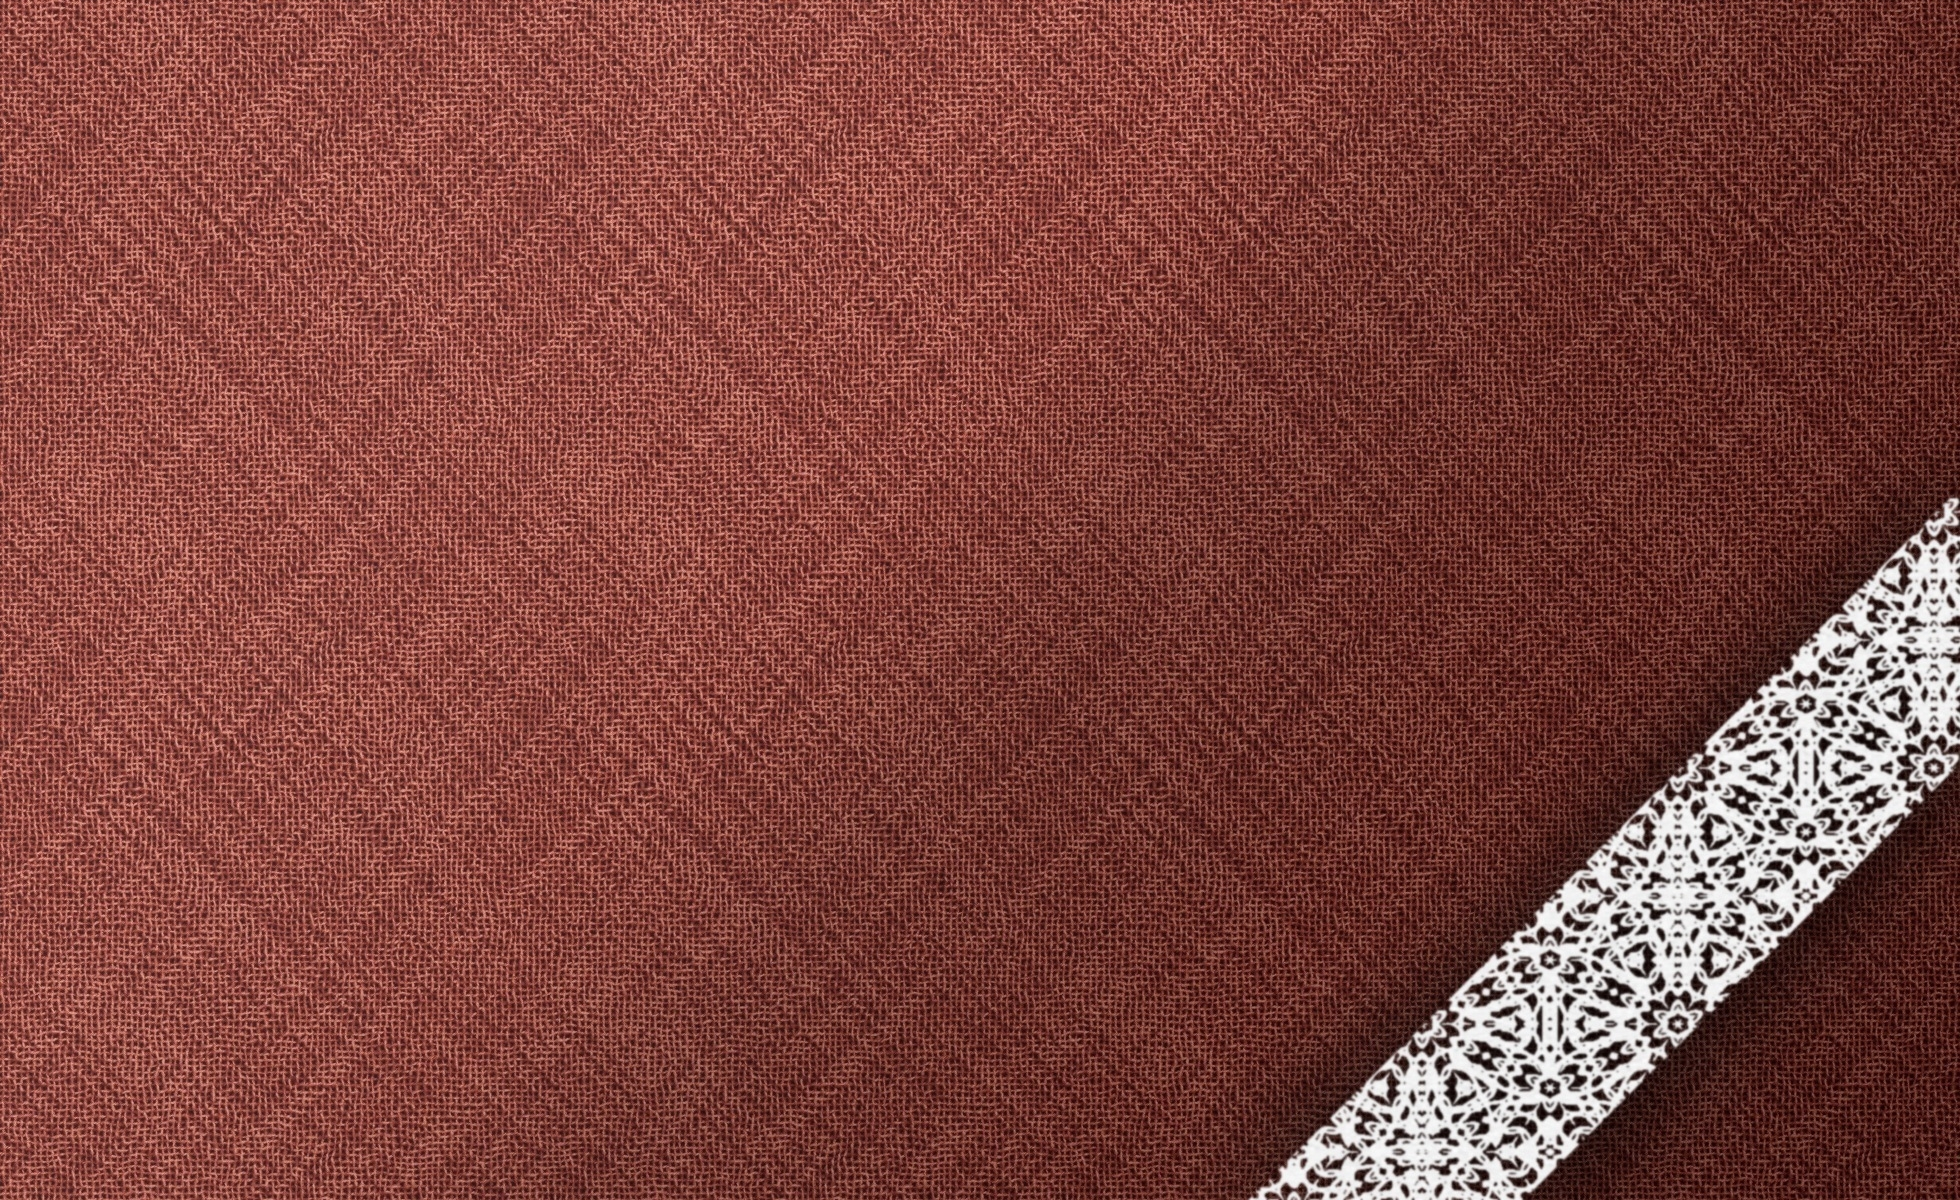 57786 download wallpaper Textures, Background, Texture, Lines, Surface, Lace screensavers and pictures for free